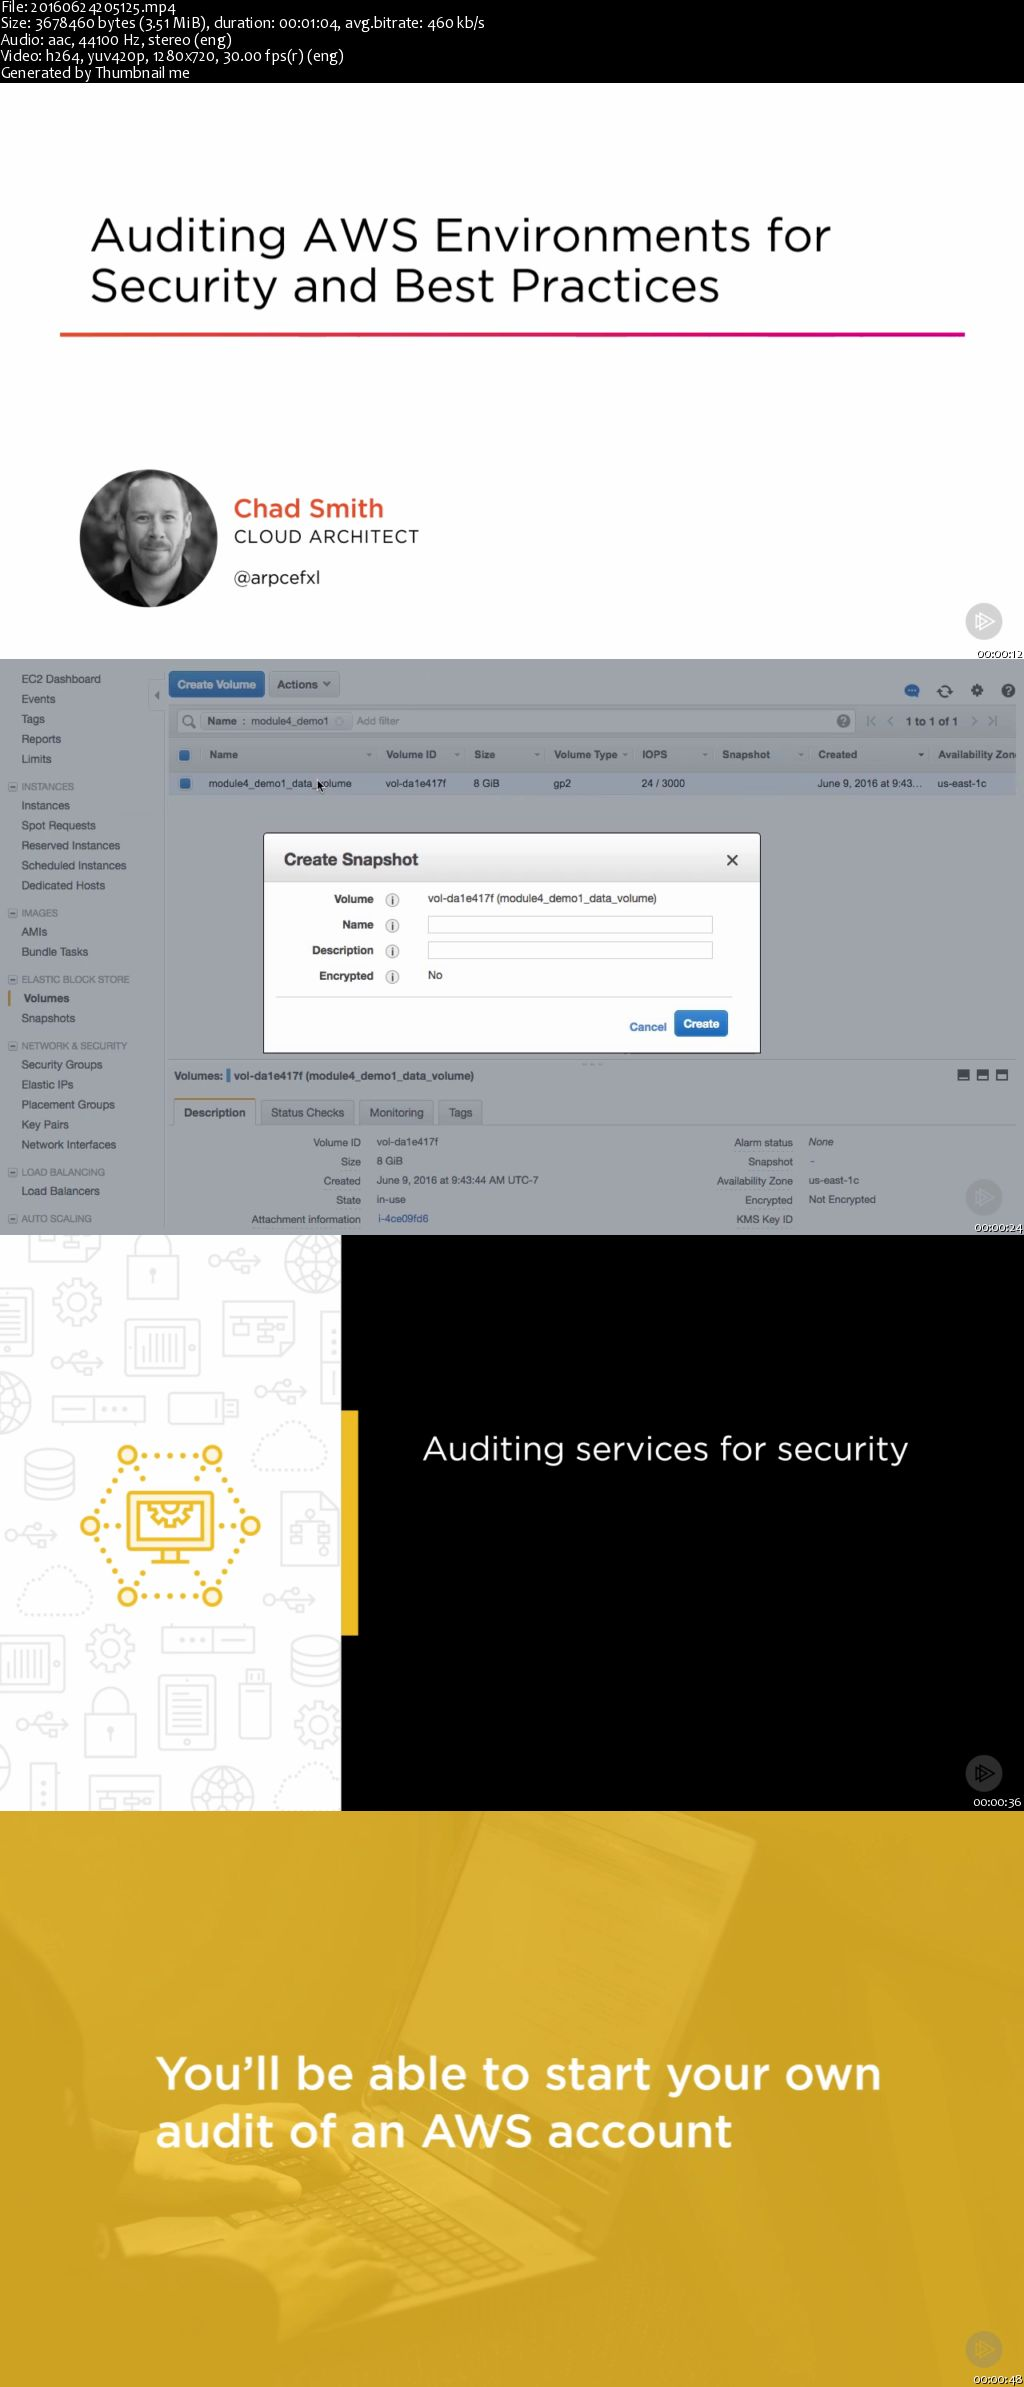 Auditing AWS Environments for Security and Best Practices